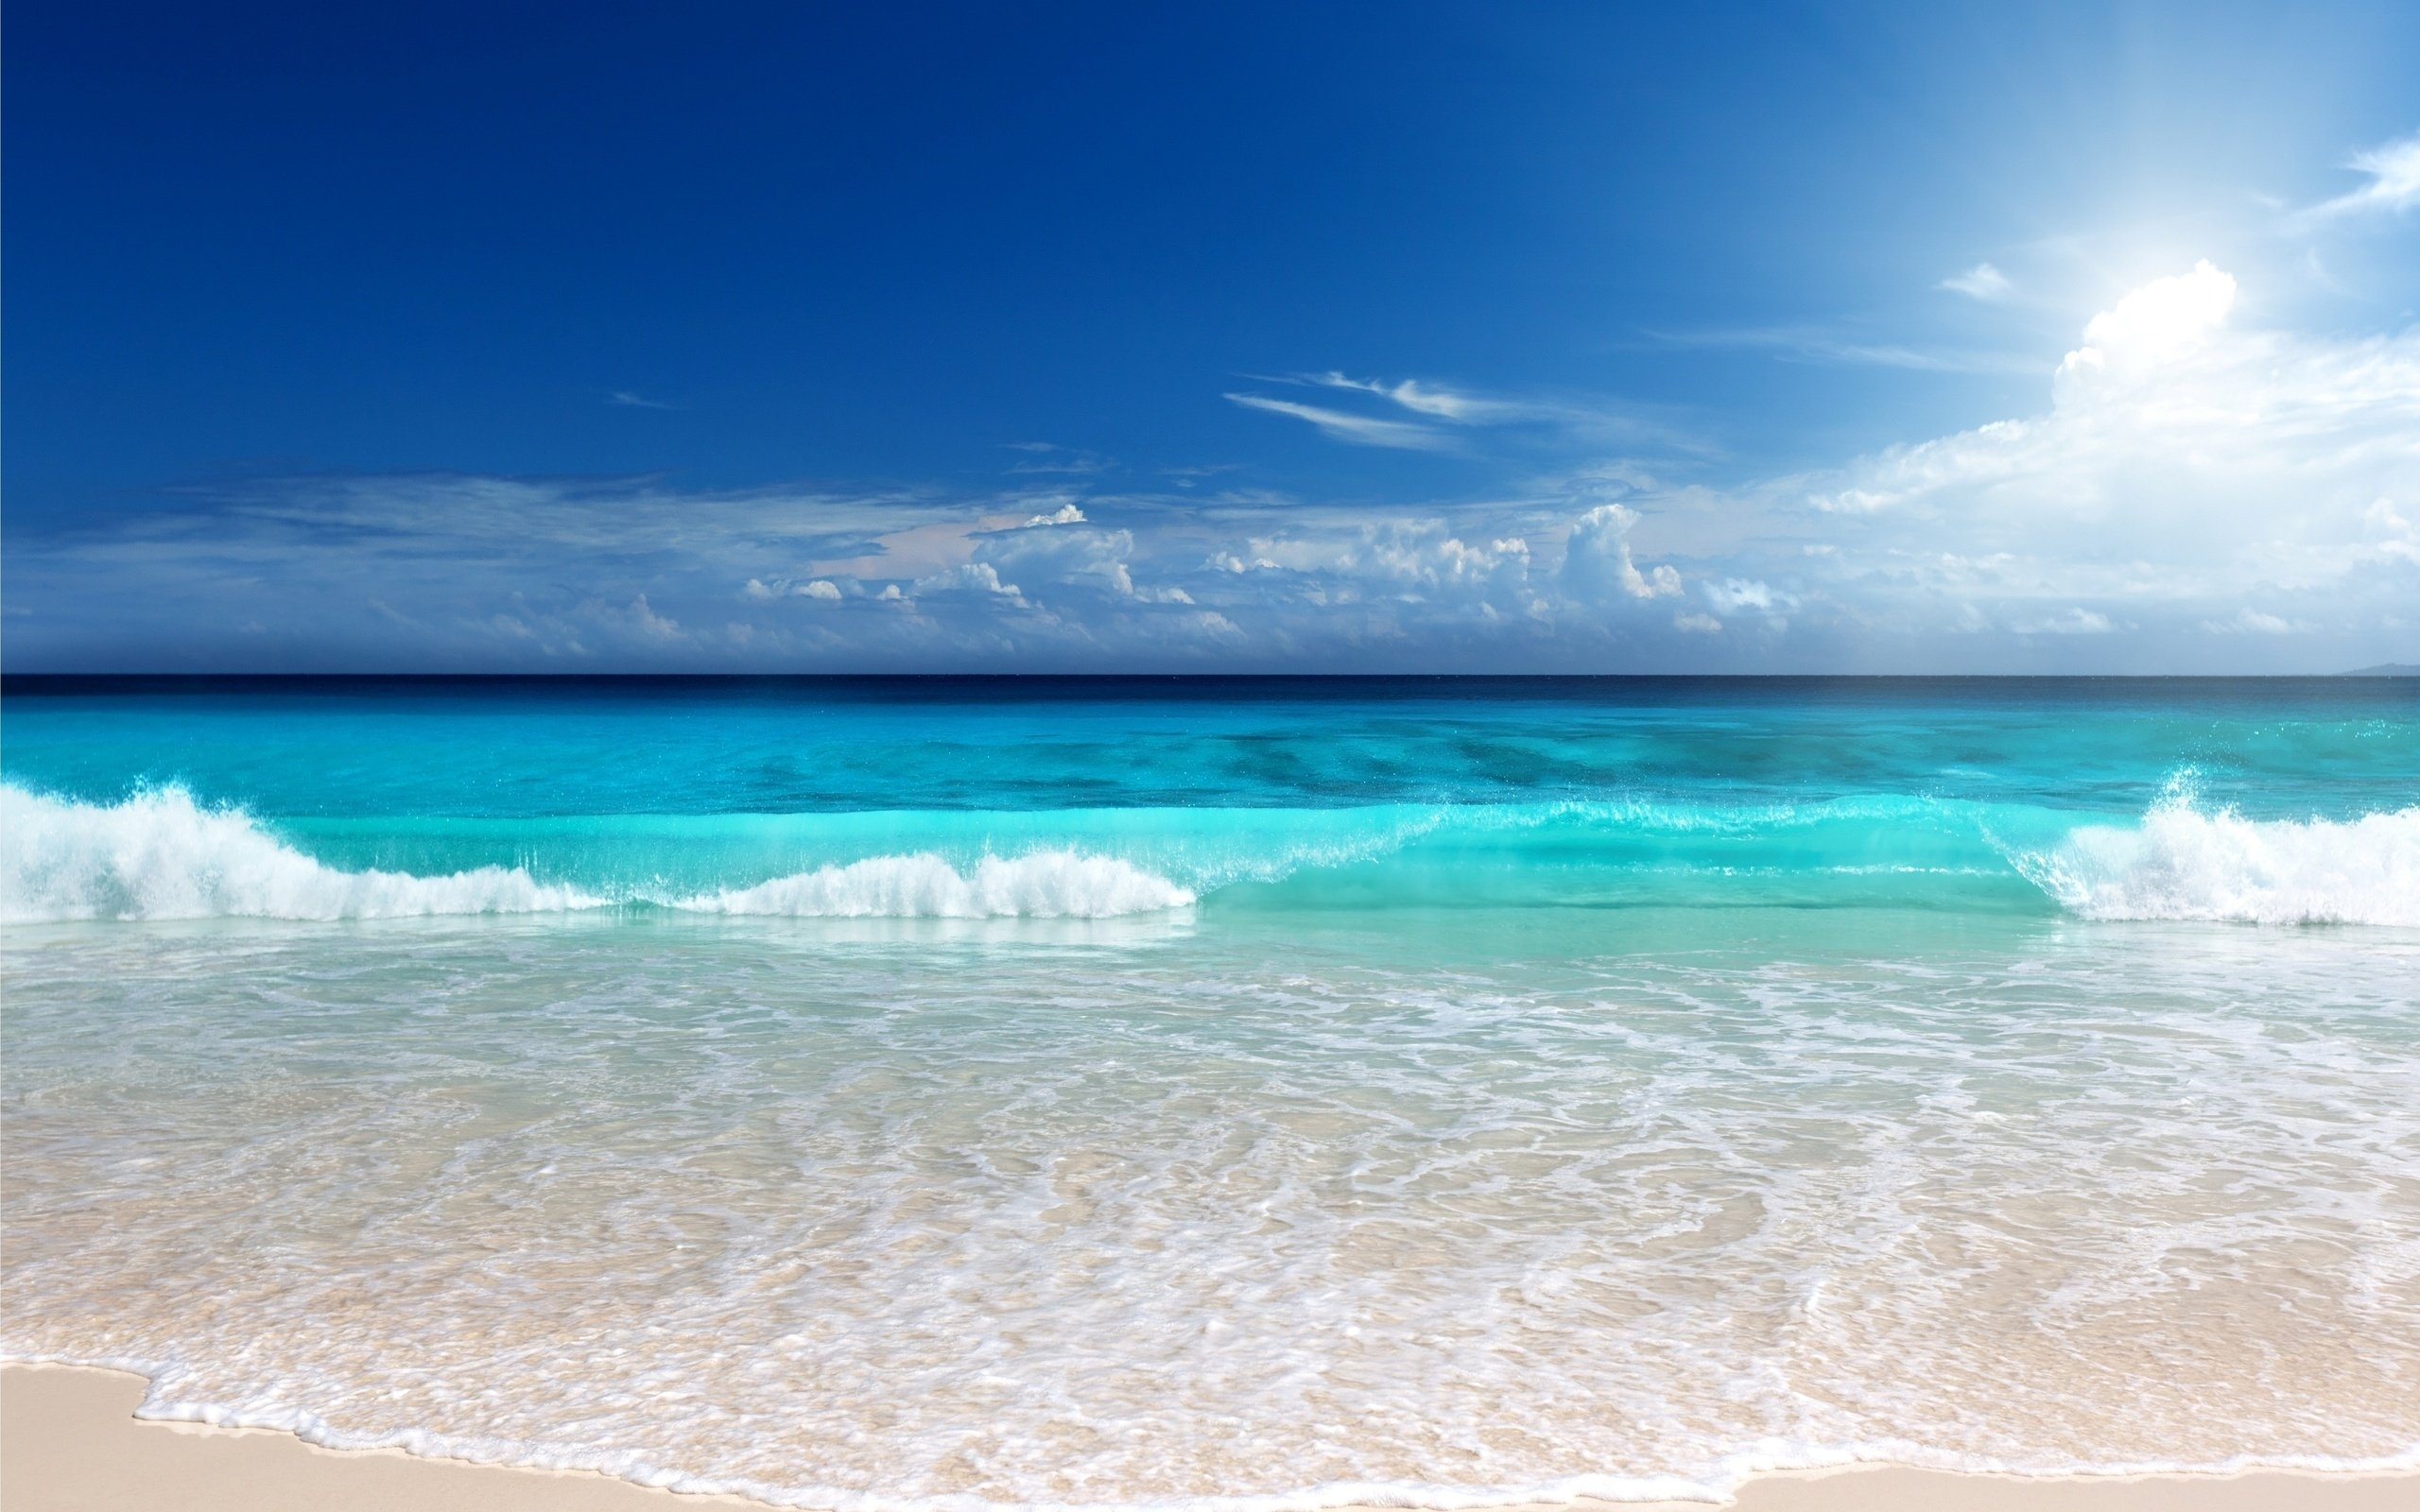 Shore waves horizon sea sand beach ocean tropical ...